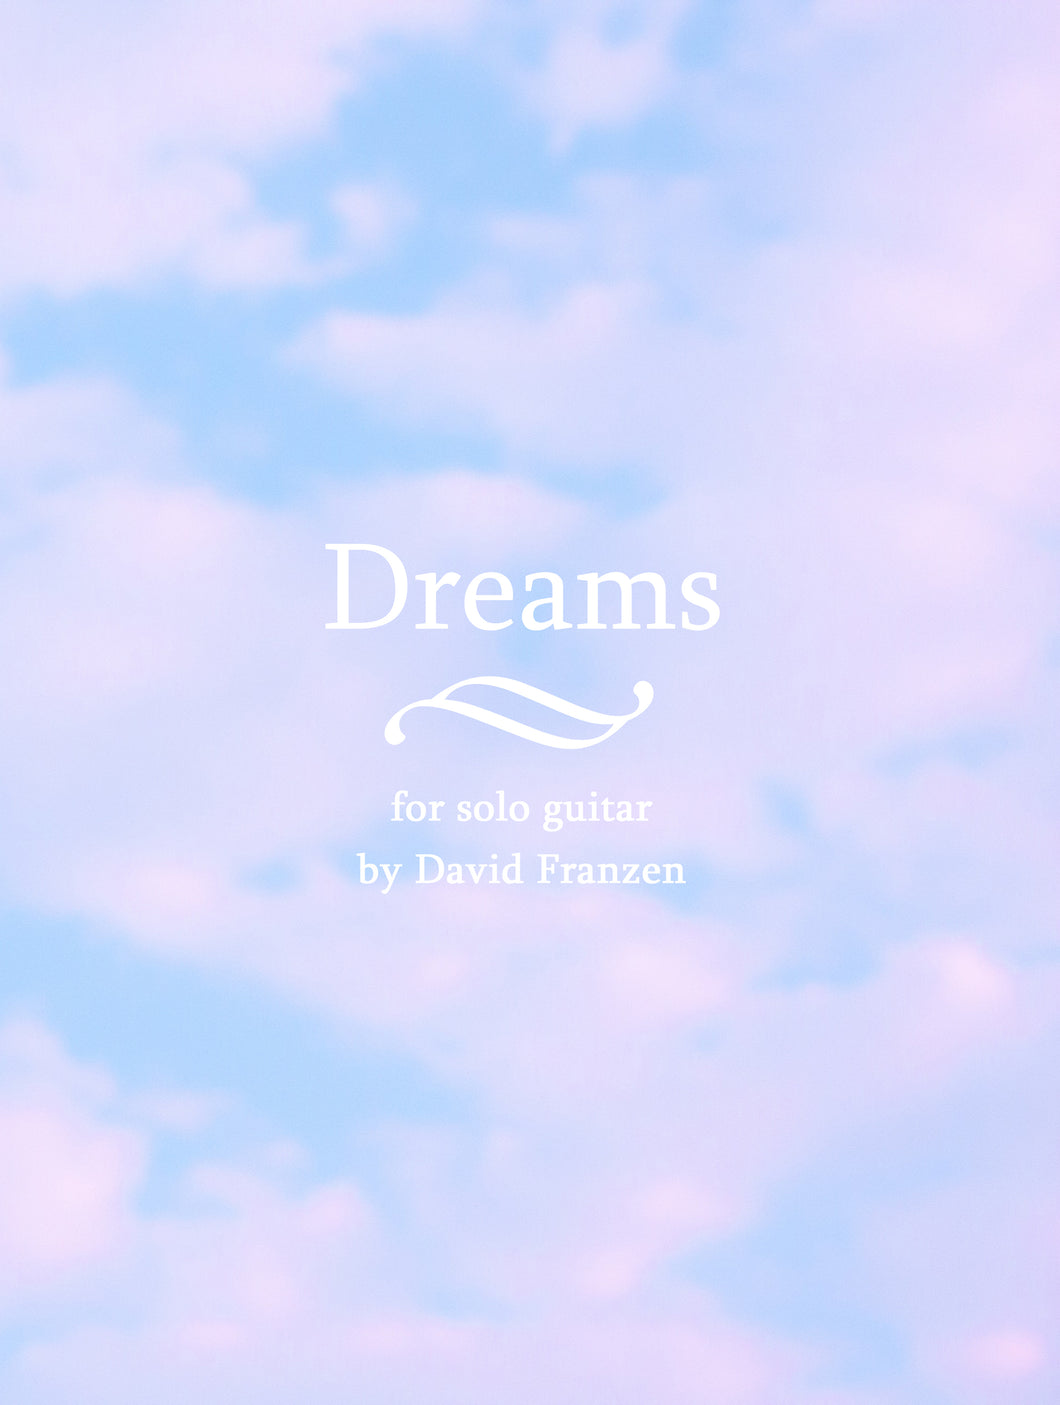 Dreams by David Franzen - Solo Guitar - PDF Sheet Music